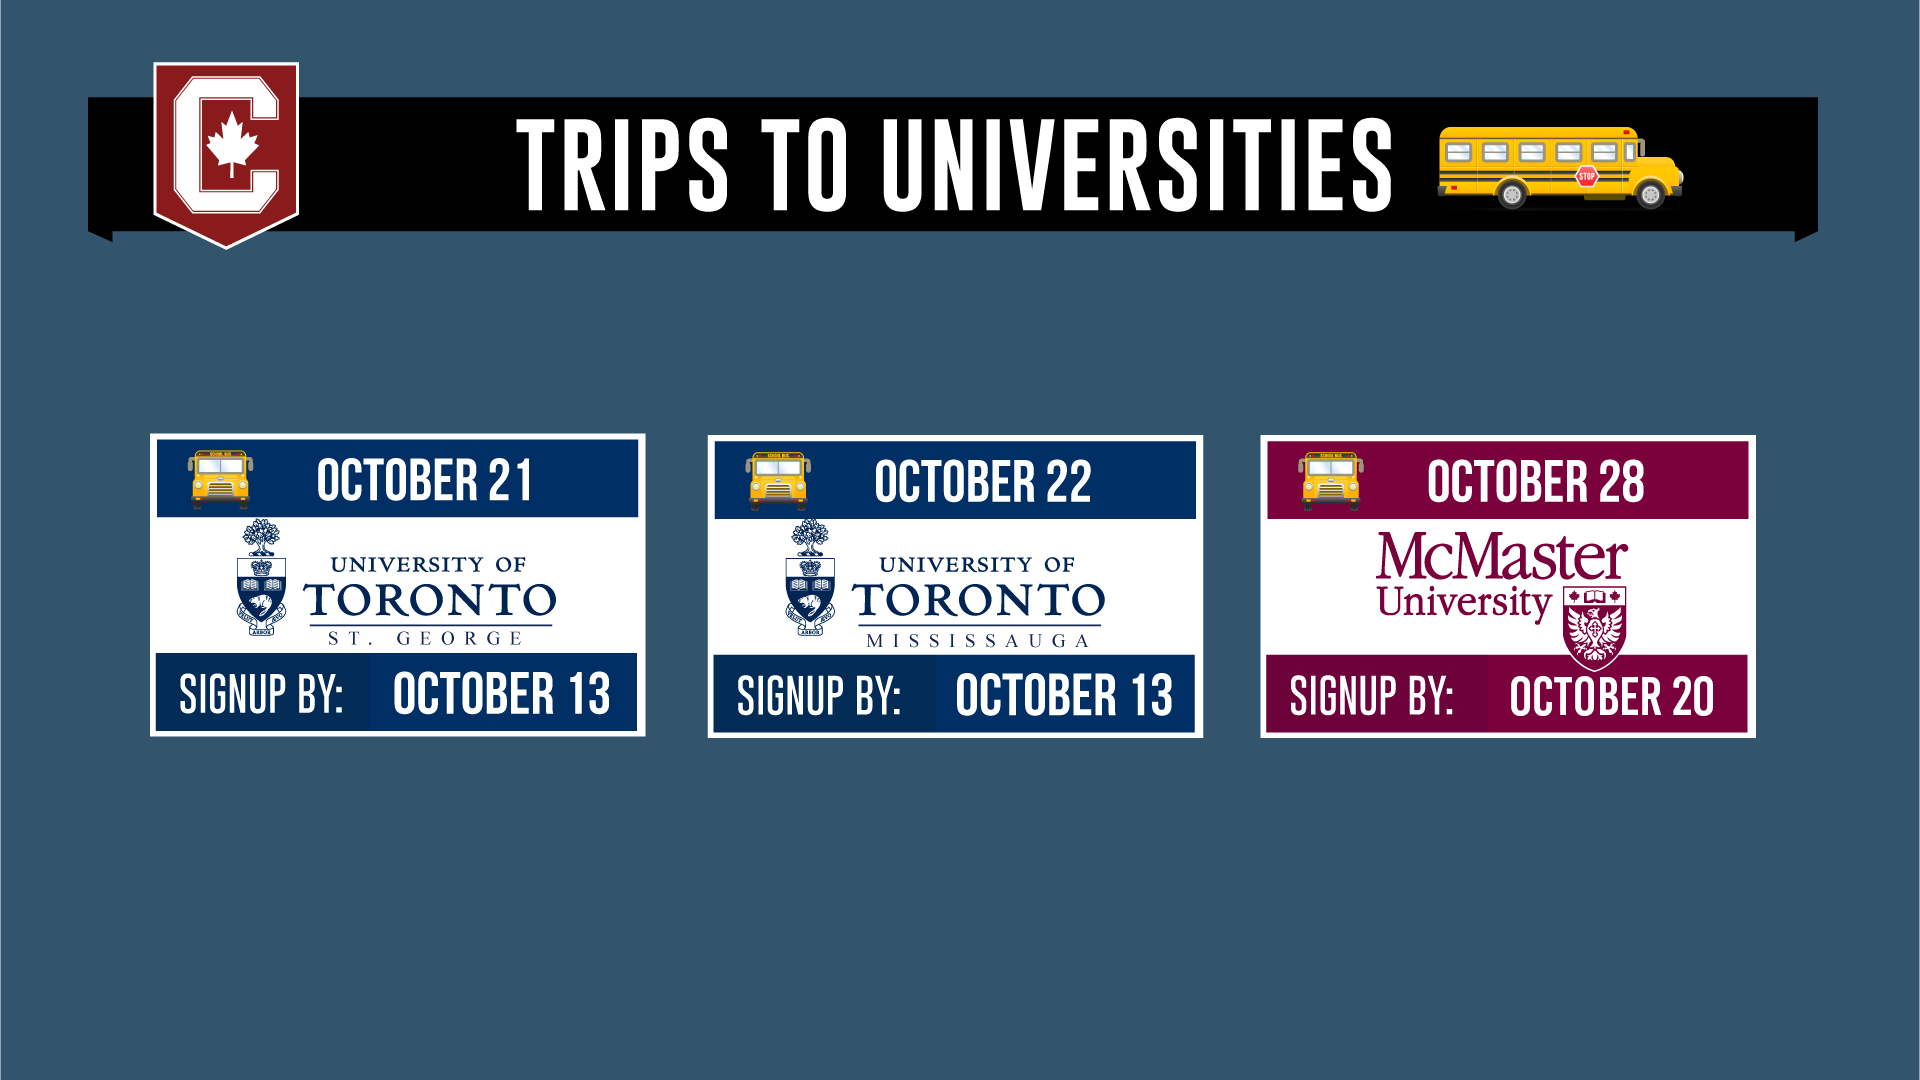 University Tours for Students!